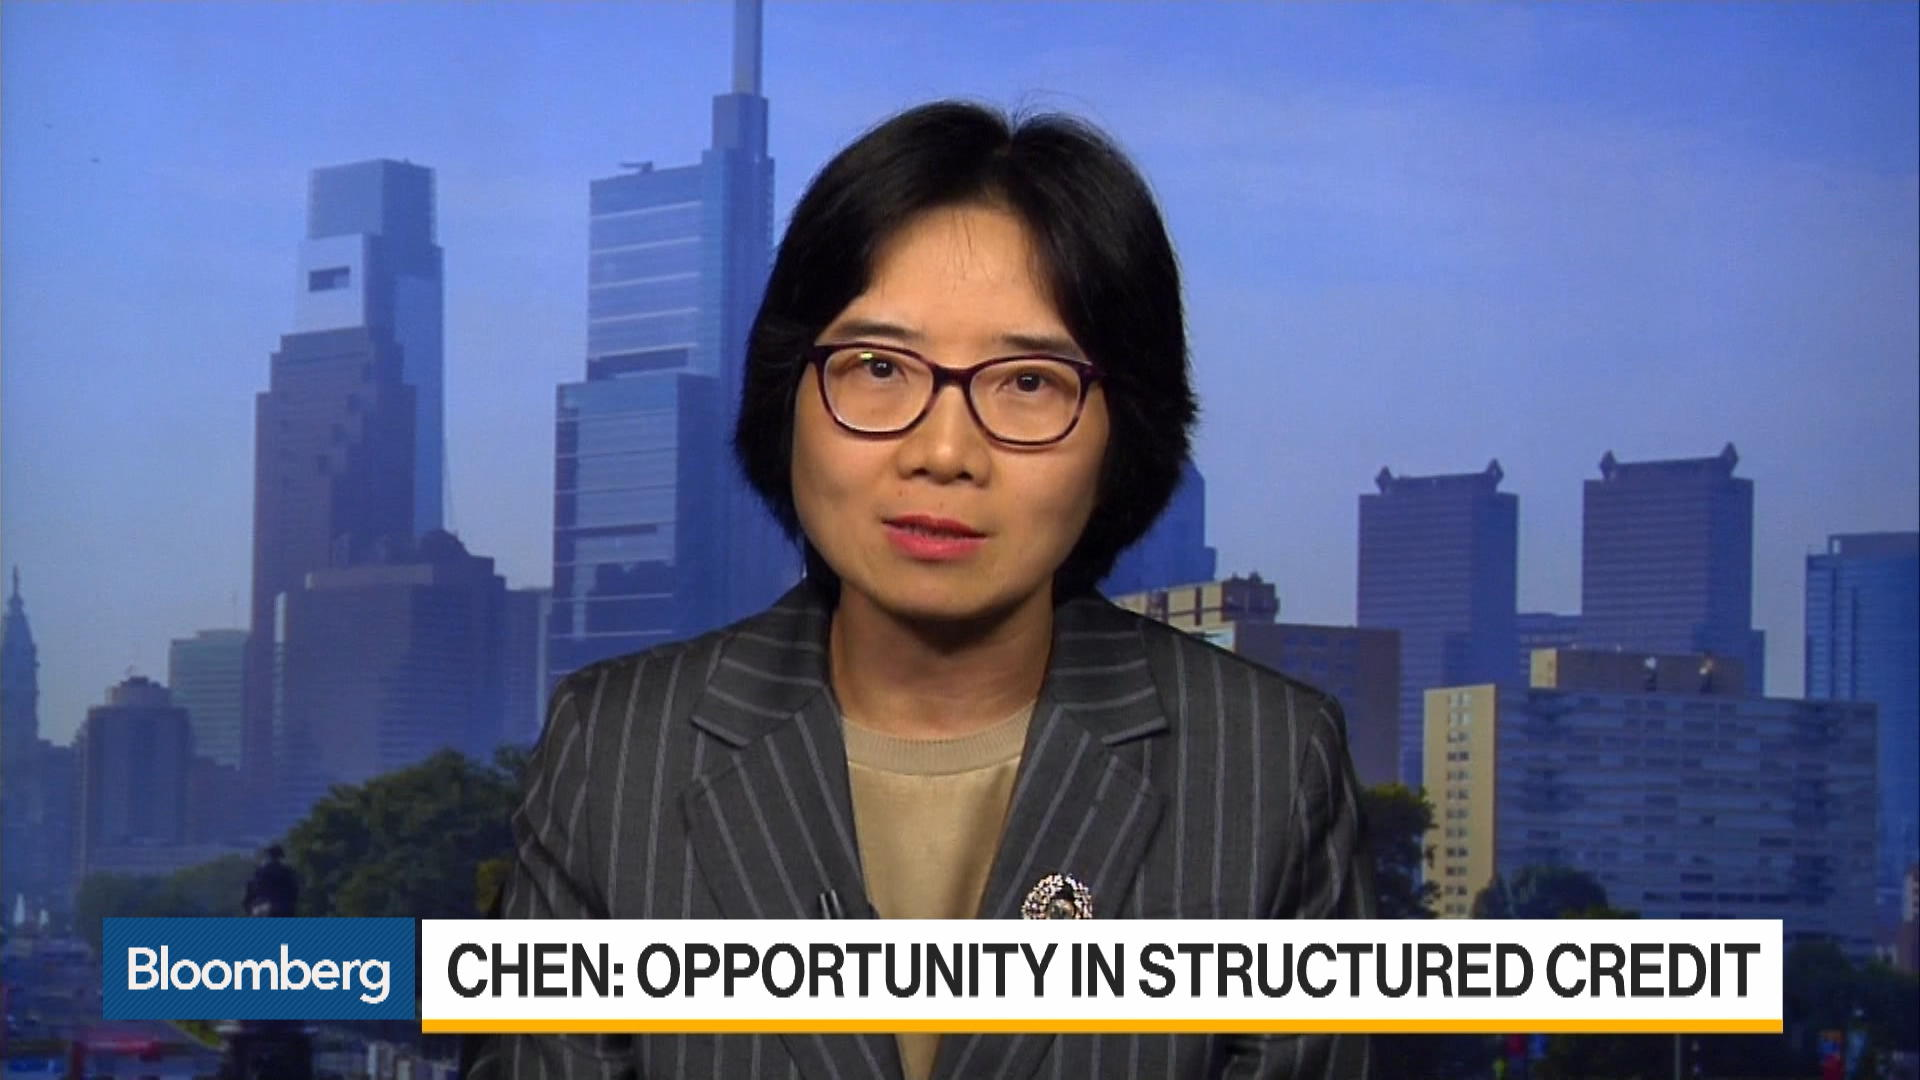 Tracy Chen, portfolio manager at Brandywine Global Investment Management, on Global Credit Markets